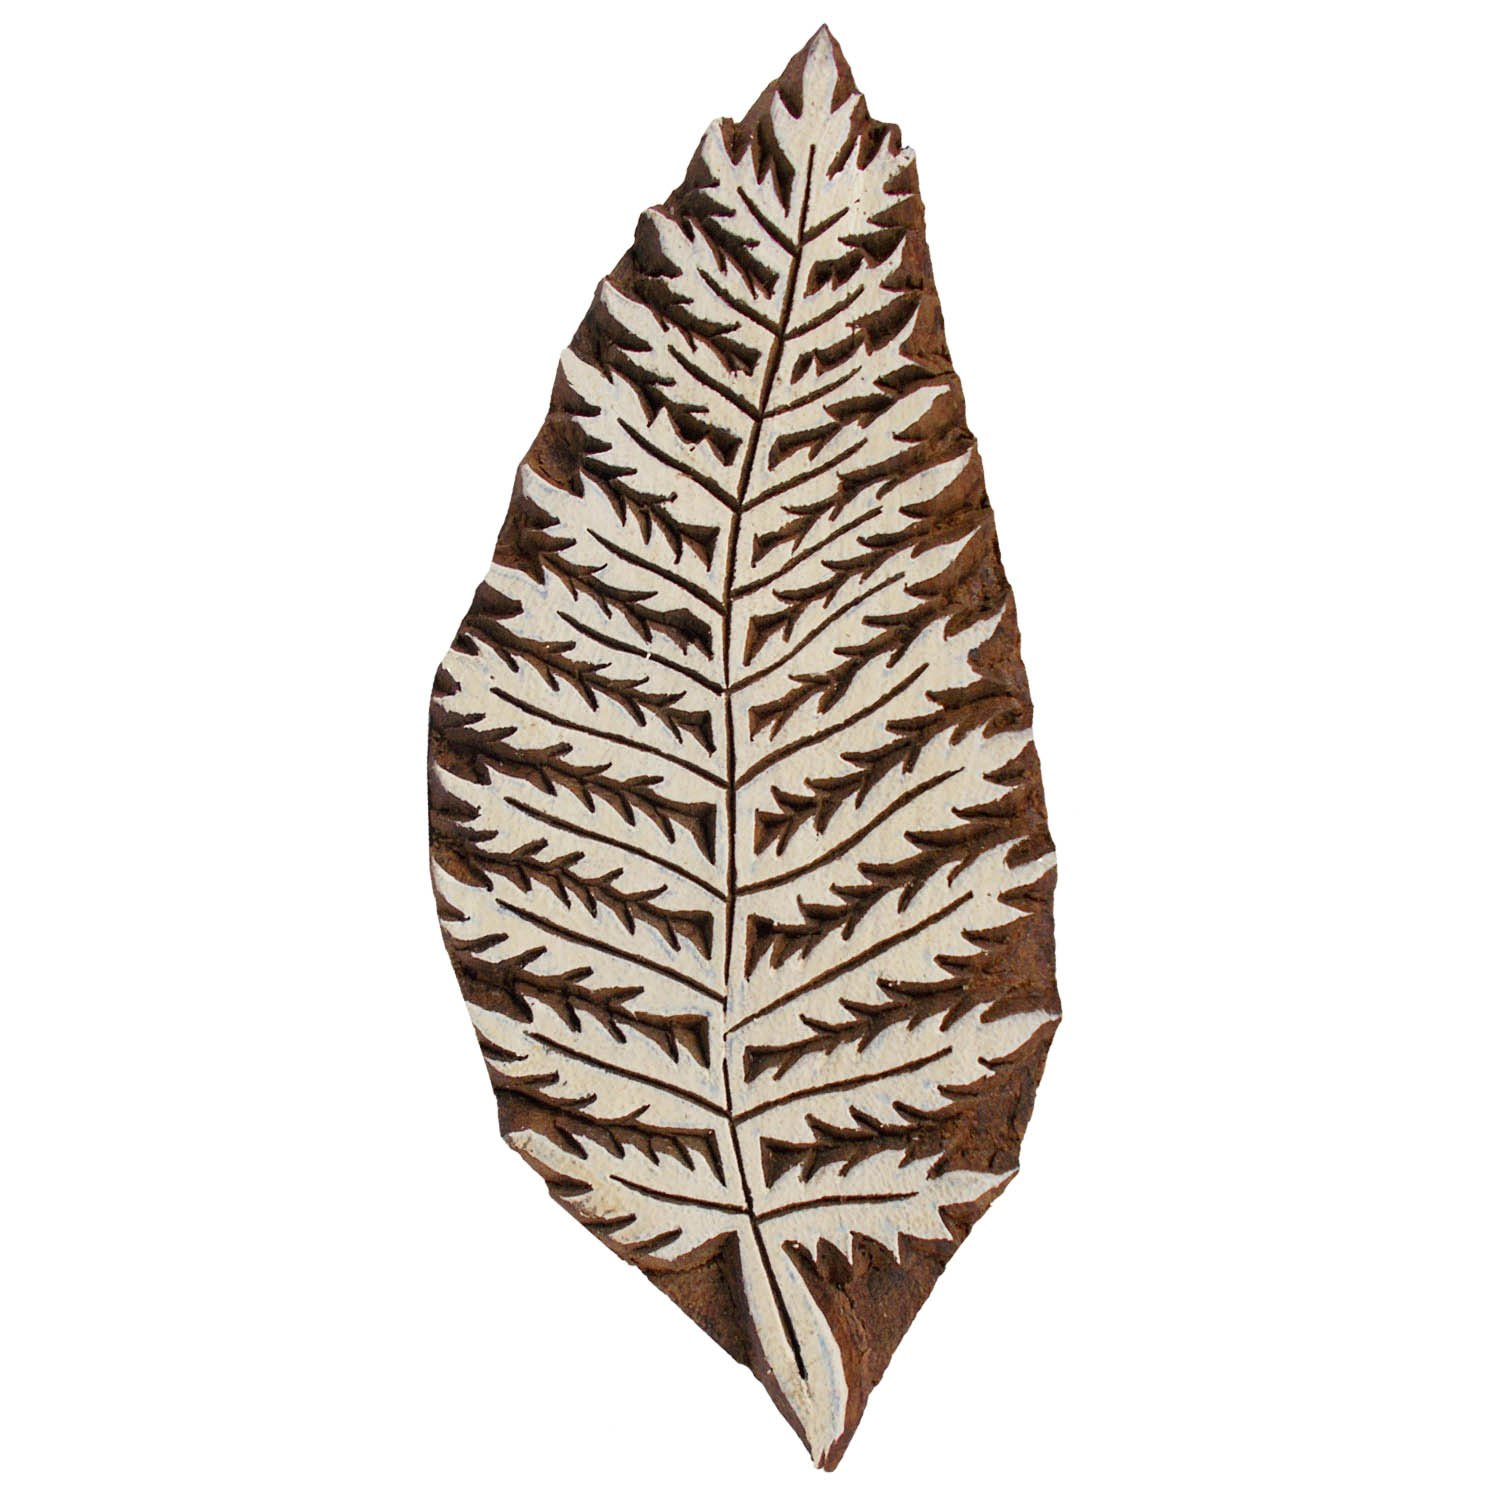 Ferns Leaf Textile Printing Clay Potter Block Craft Henna Tattoo Scrapbook Stamps